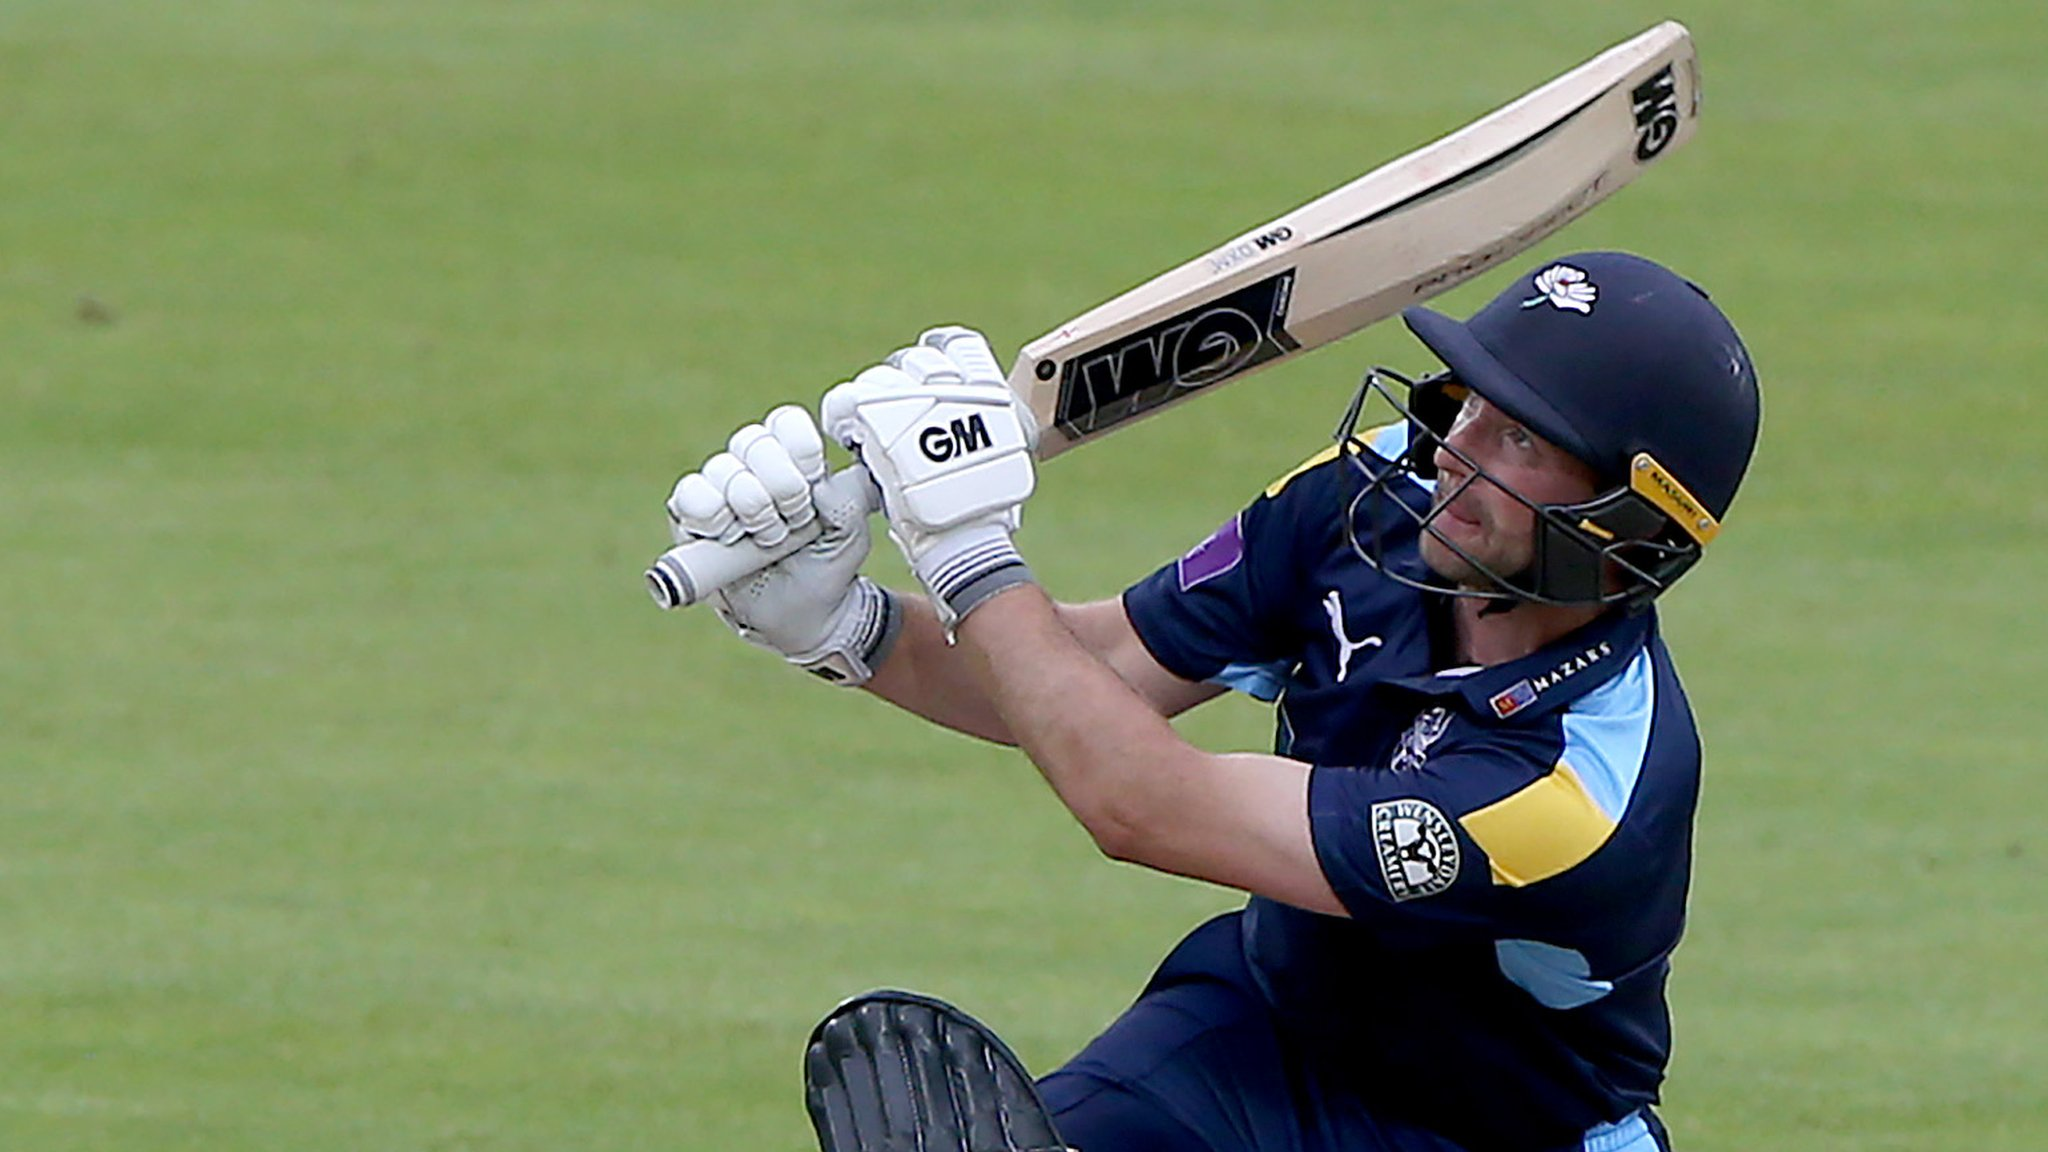 One-Day Cup: Adam Lyth hits unbeaten 132 as Yorkshire beat Leicestershire